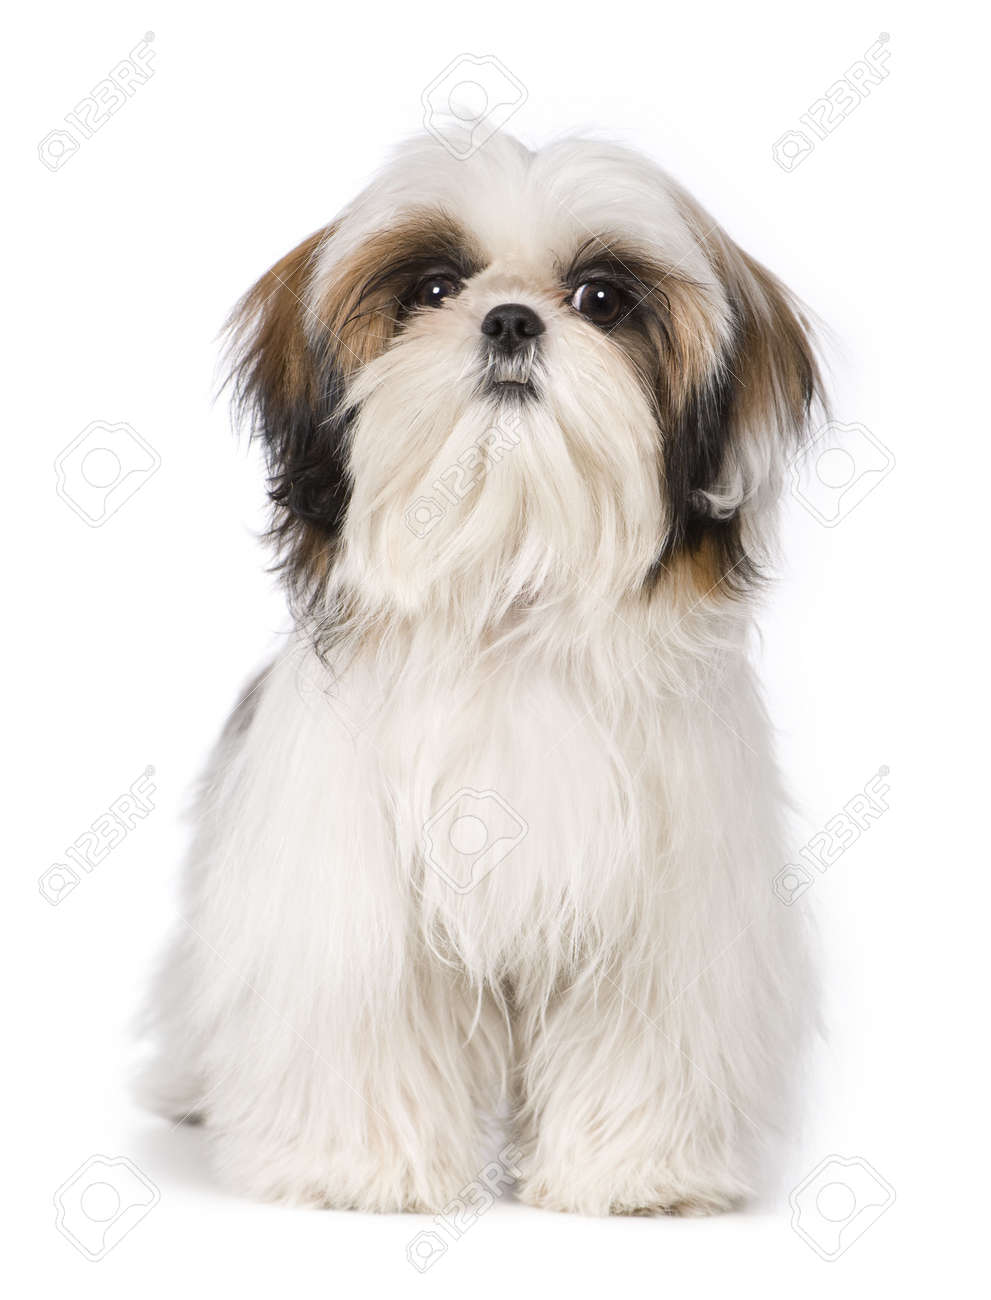 Shih Tzu in front of a white background Stock Photo - 2935408